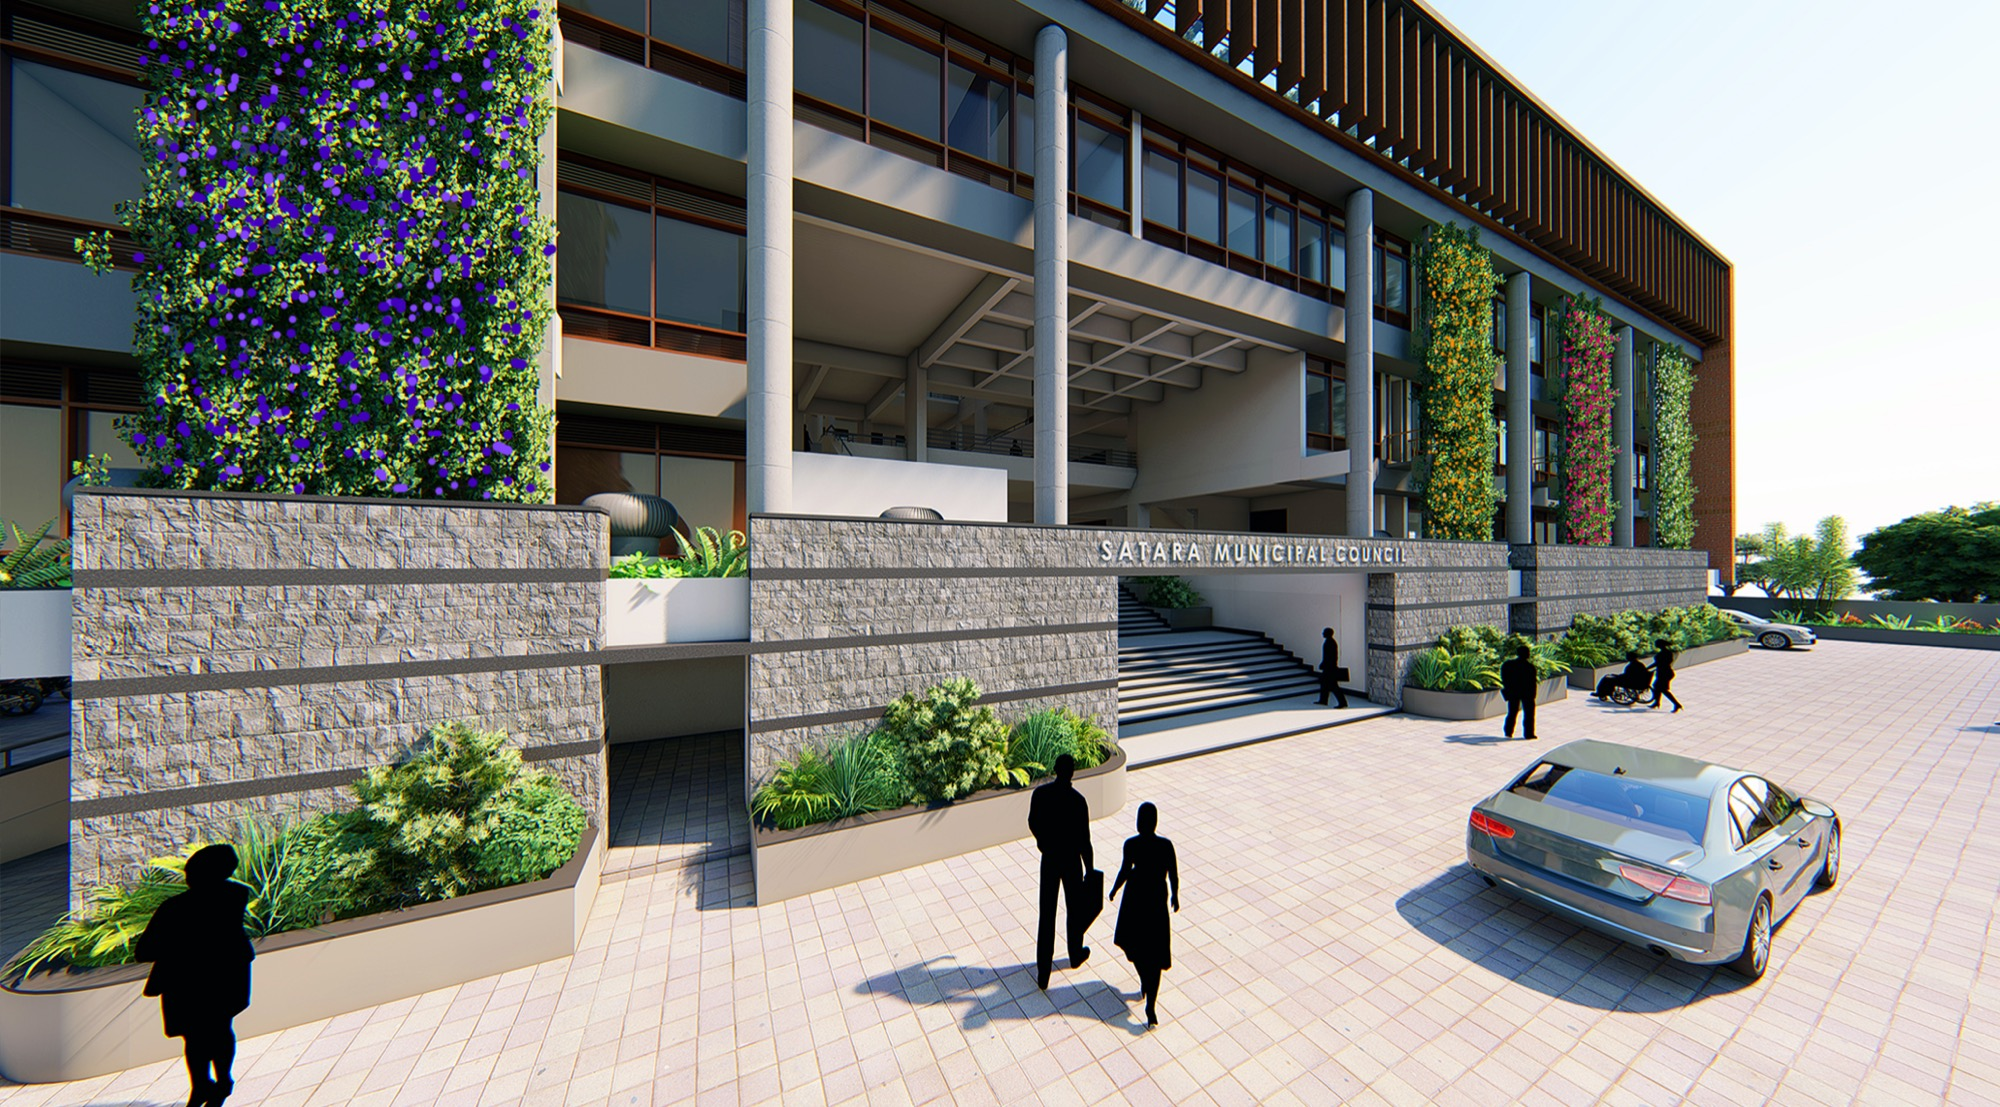 Satara Municipal Corporation, Competition Entry by KENARCH Architects, Pune 18